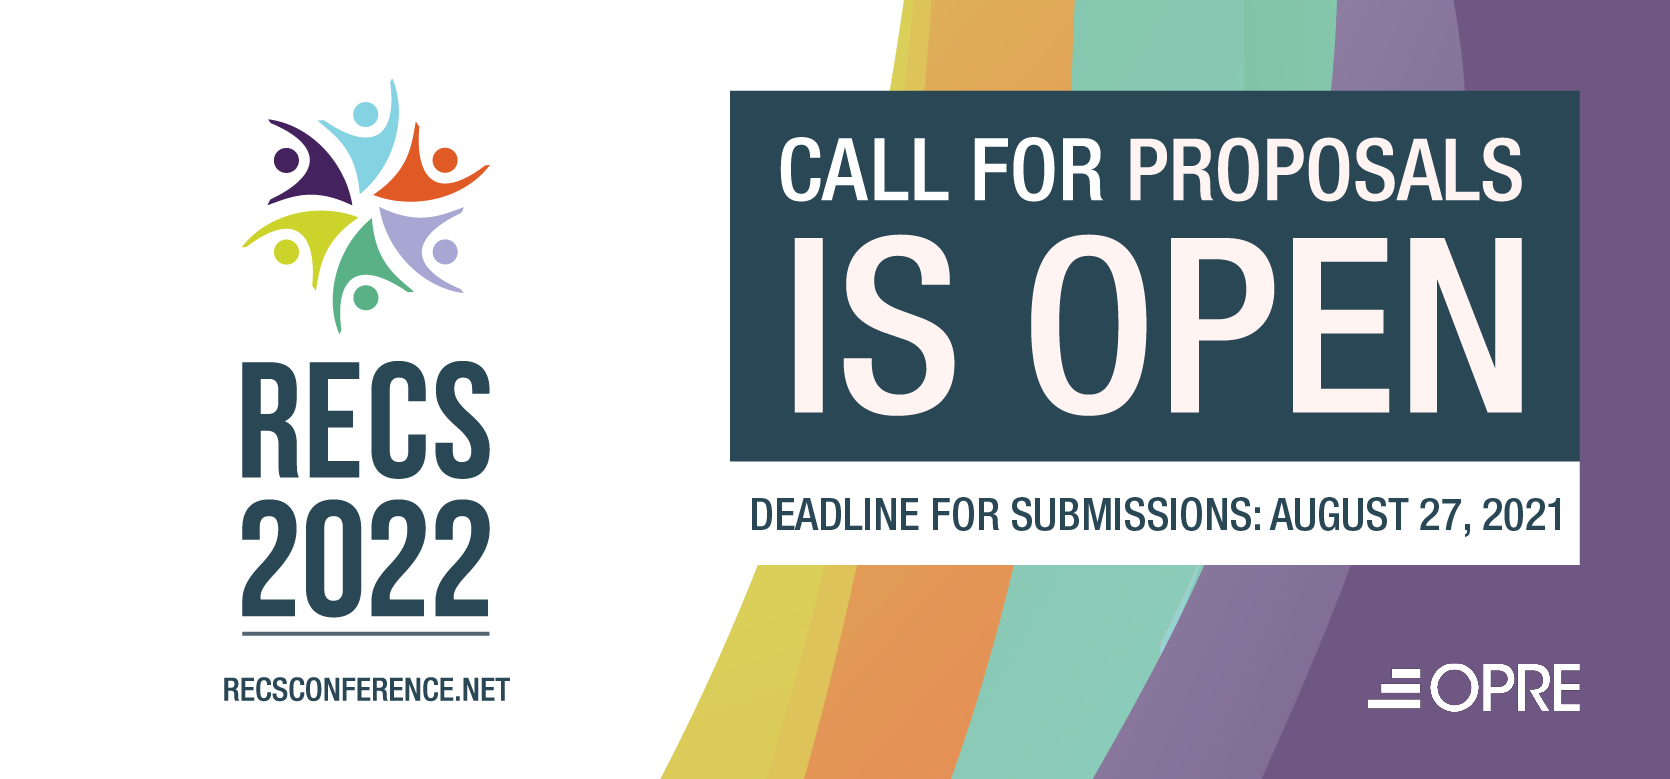 RECS 2022 Call for Proposals Now Open